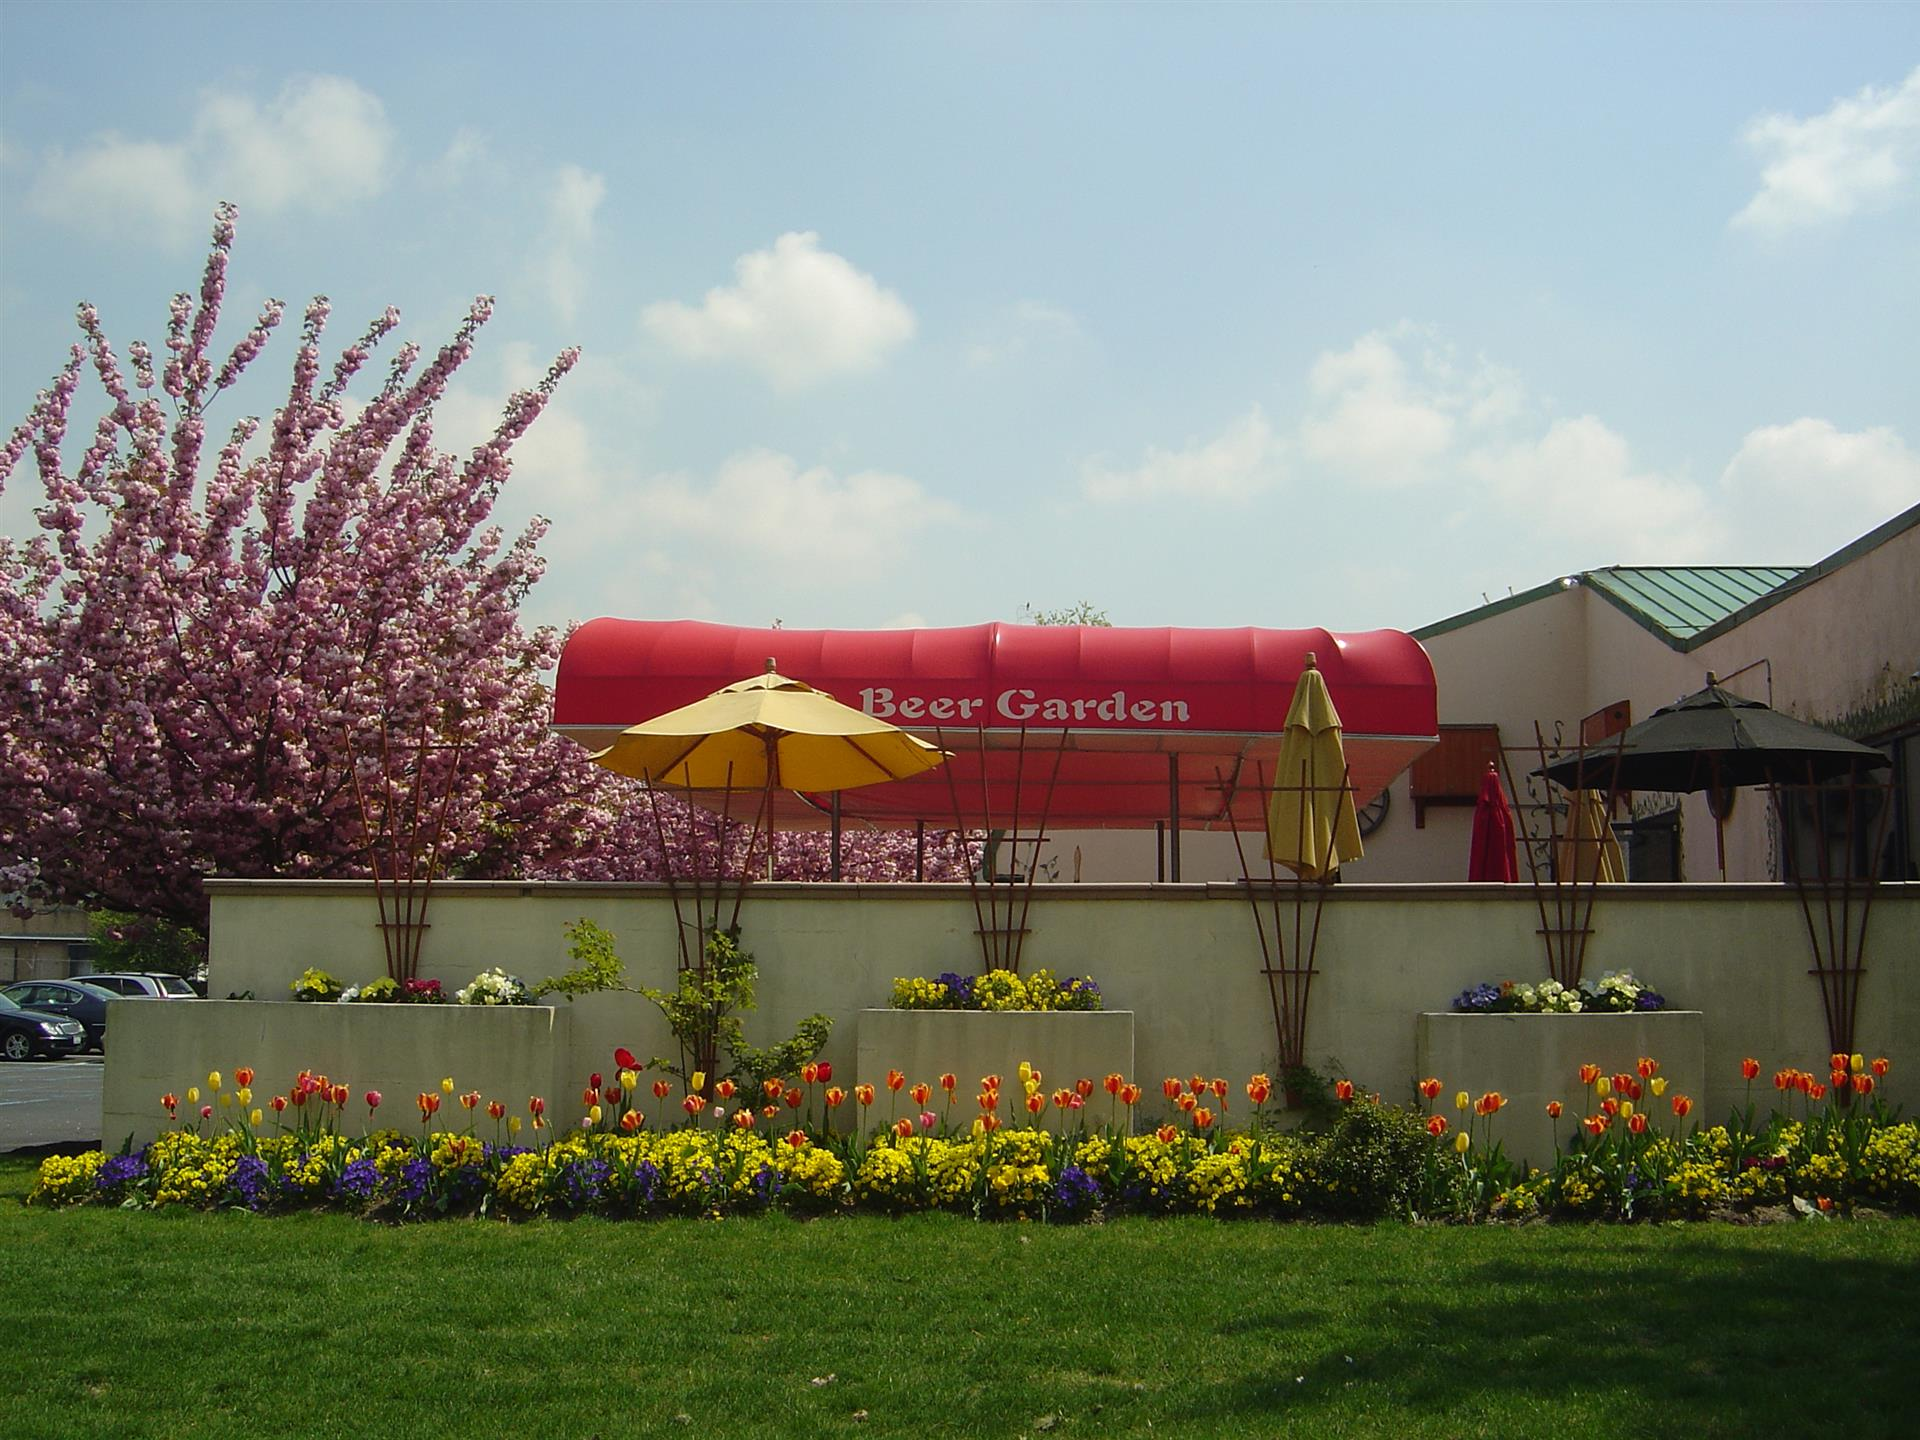 Outdoor view of beer garden umbrella and flowers